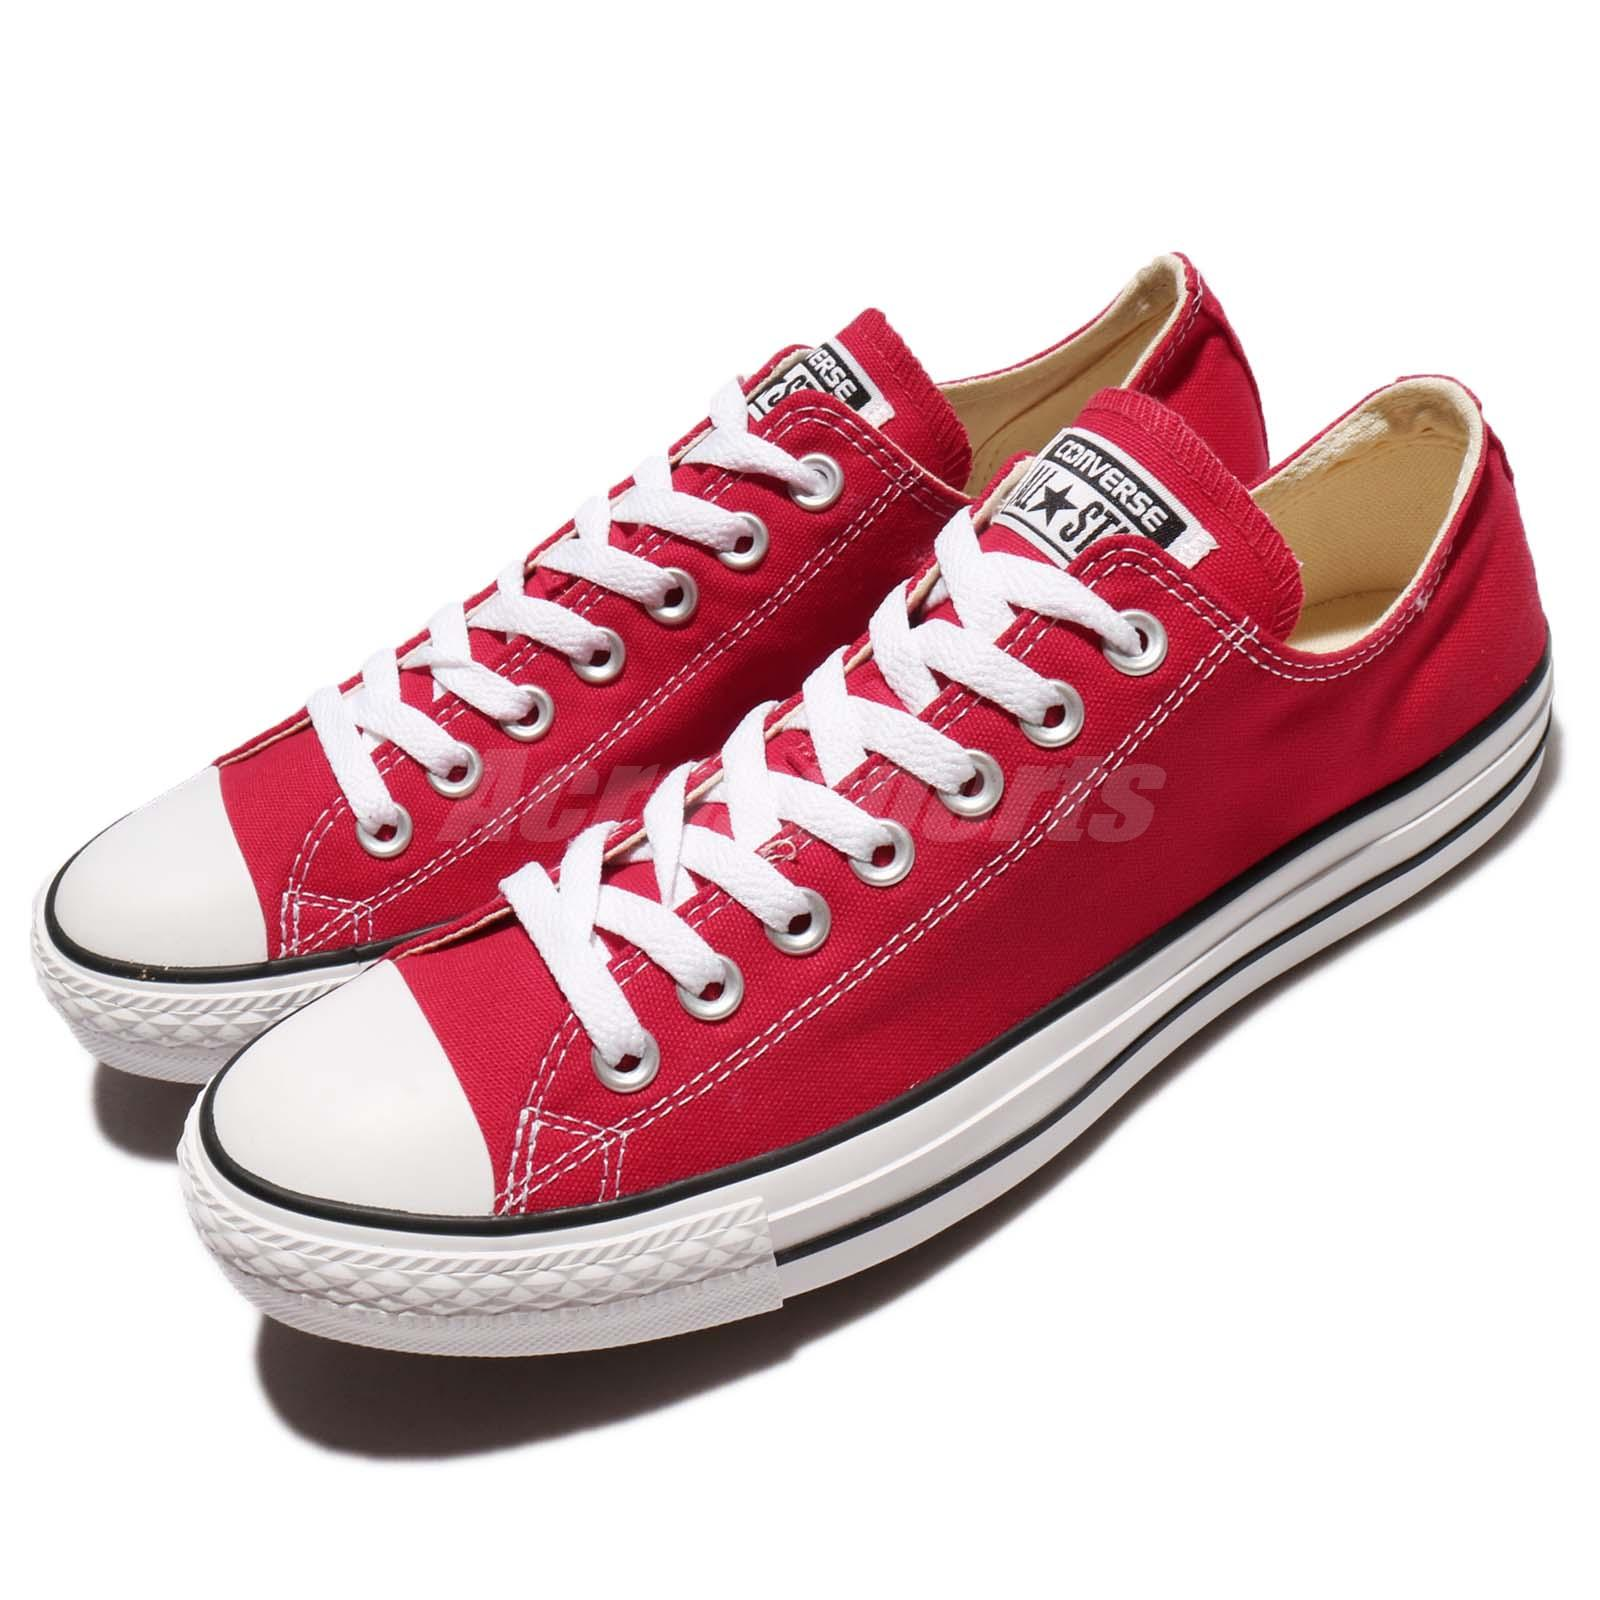 Converse All Star OX Chuck Taylor Red White Men Canvas